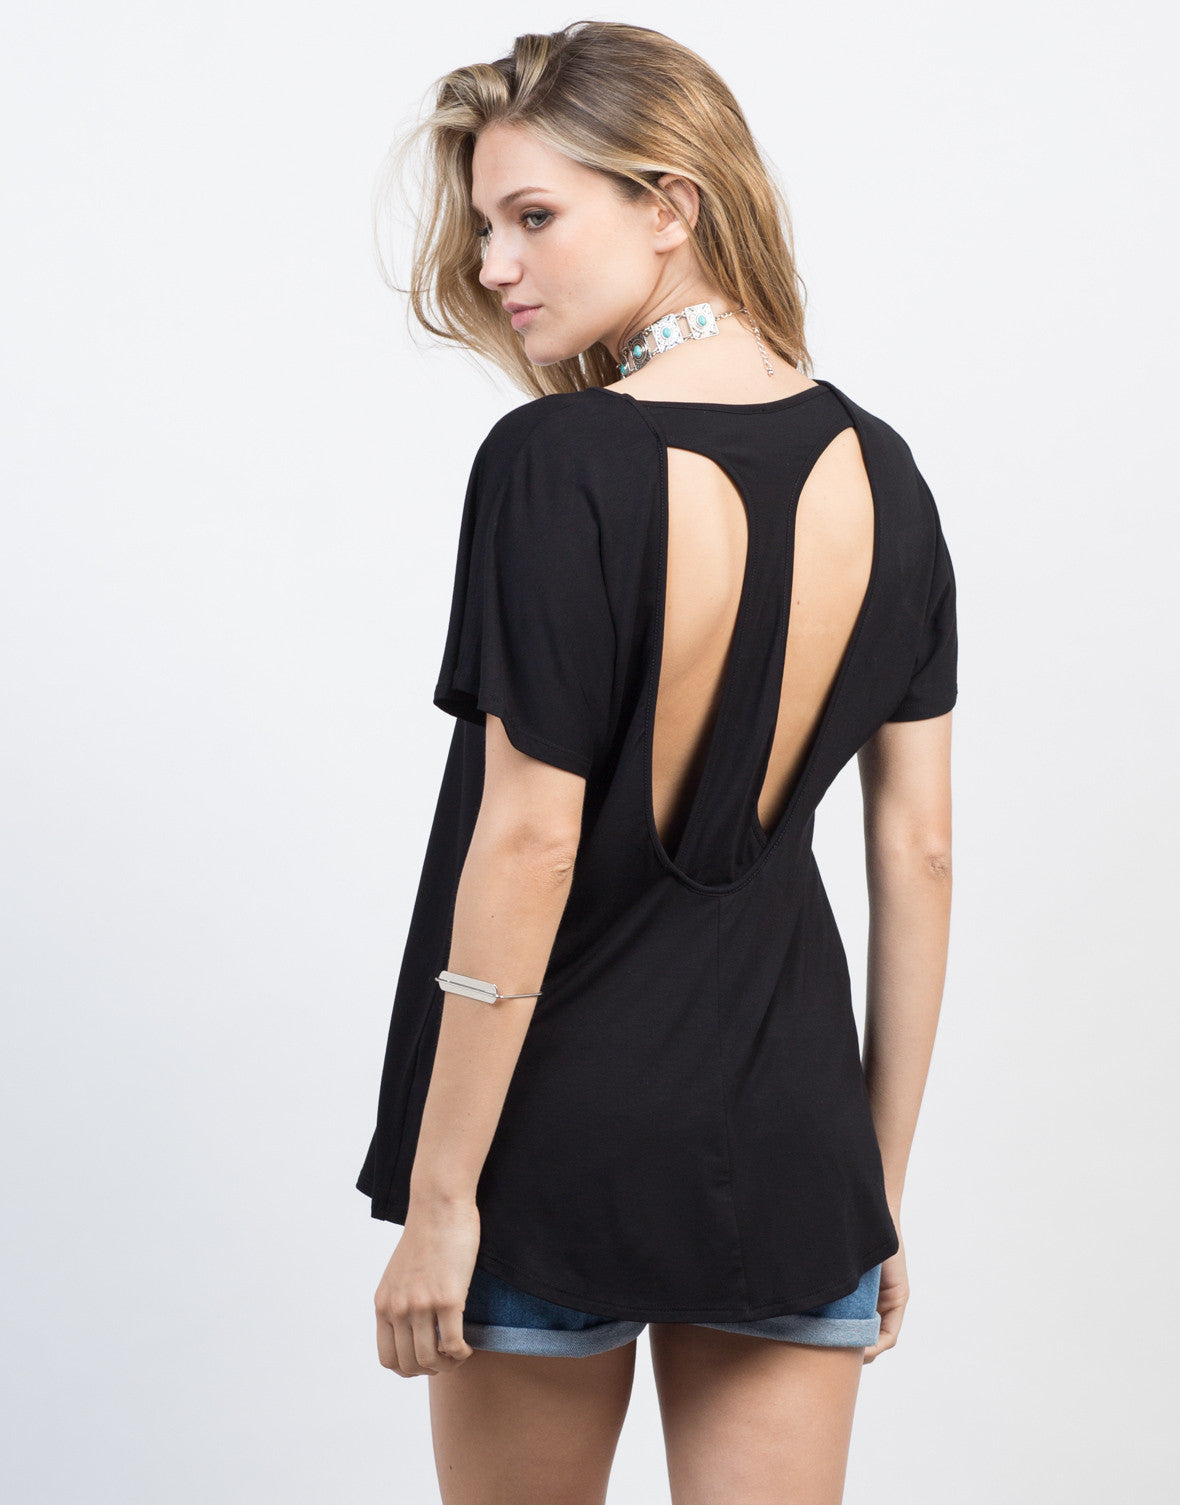 Back View of Racerback Cut Out Tee